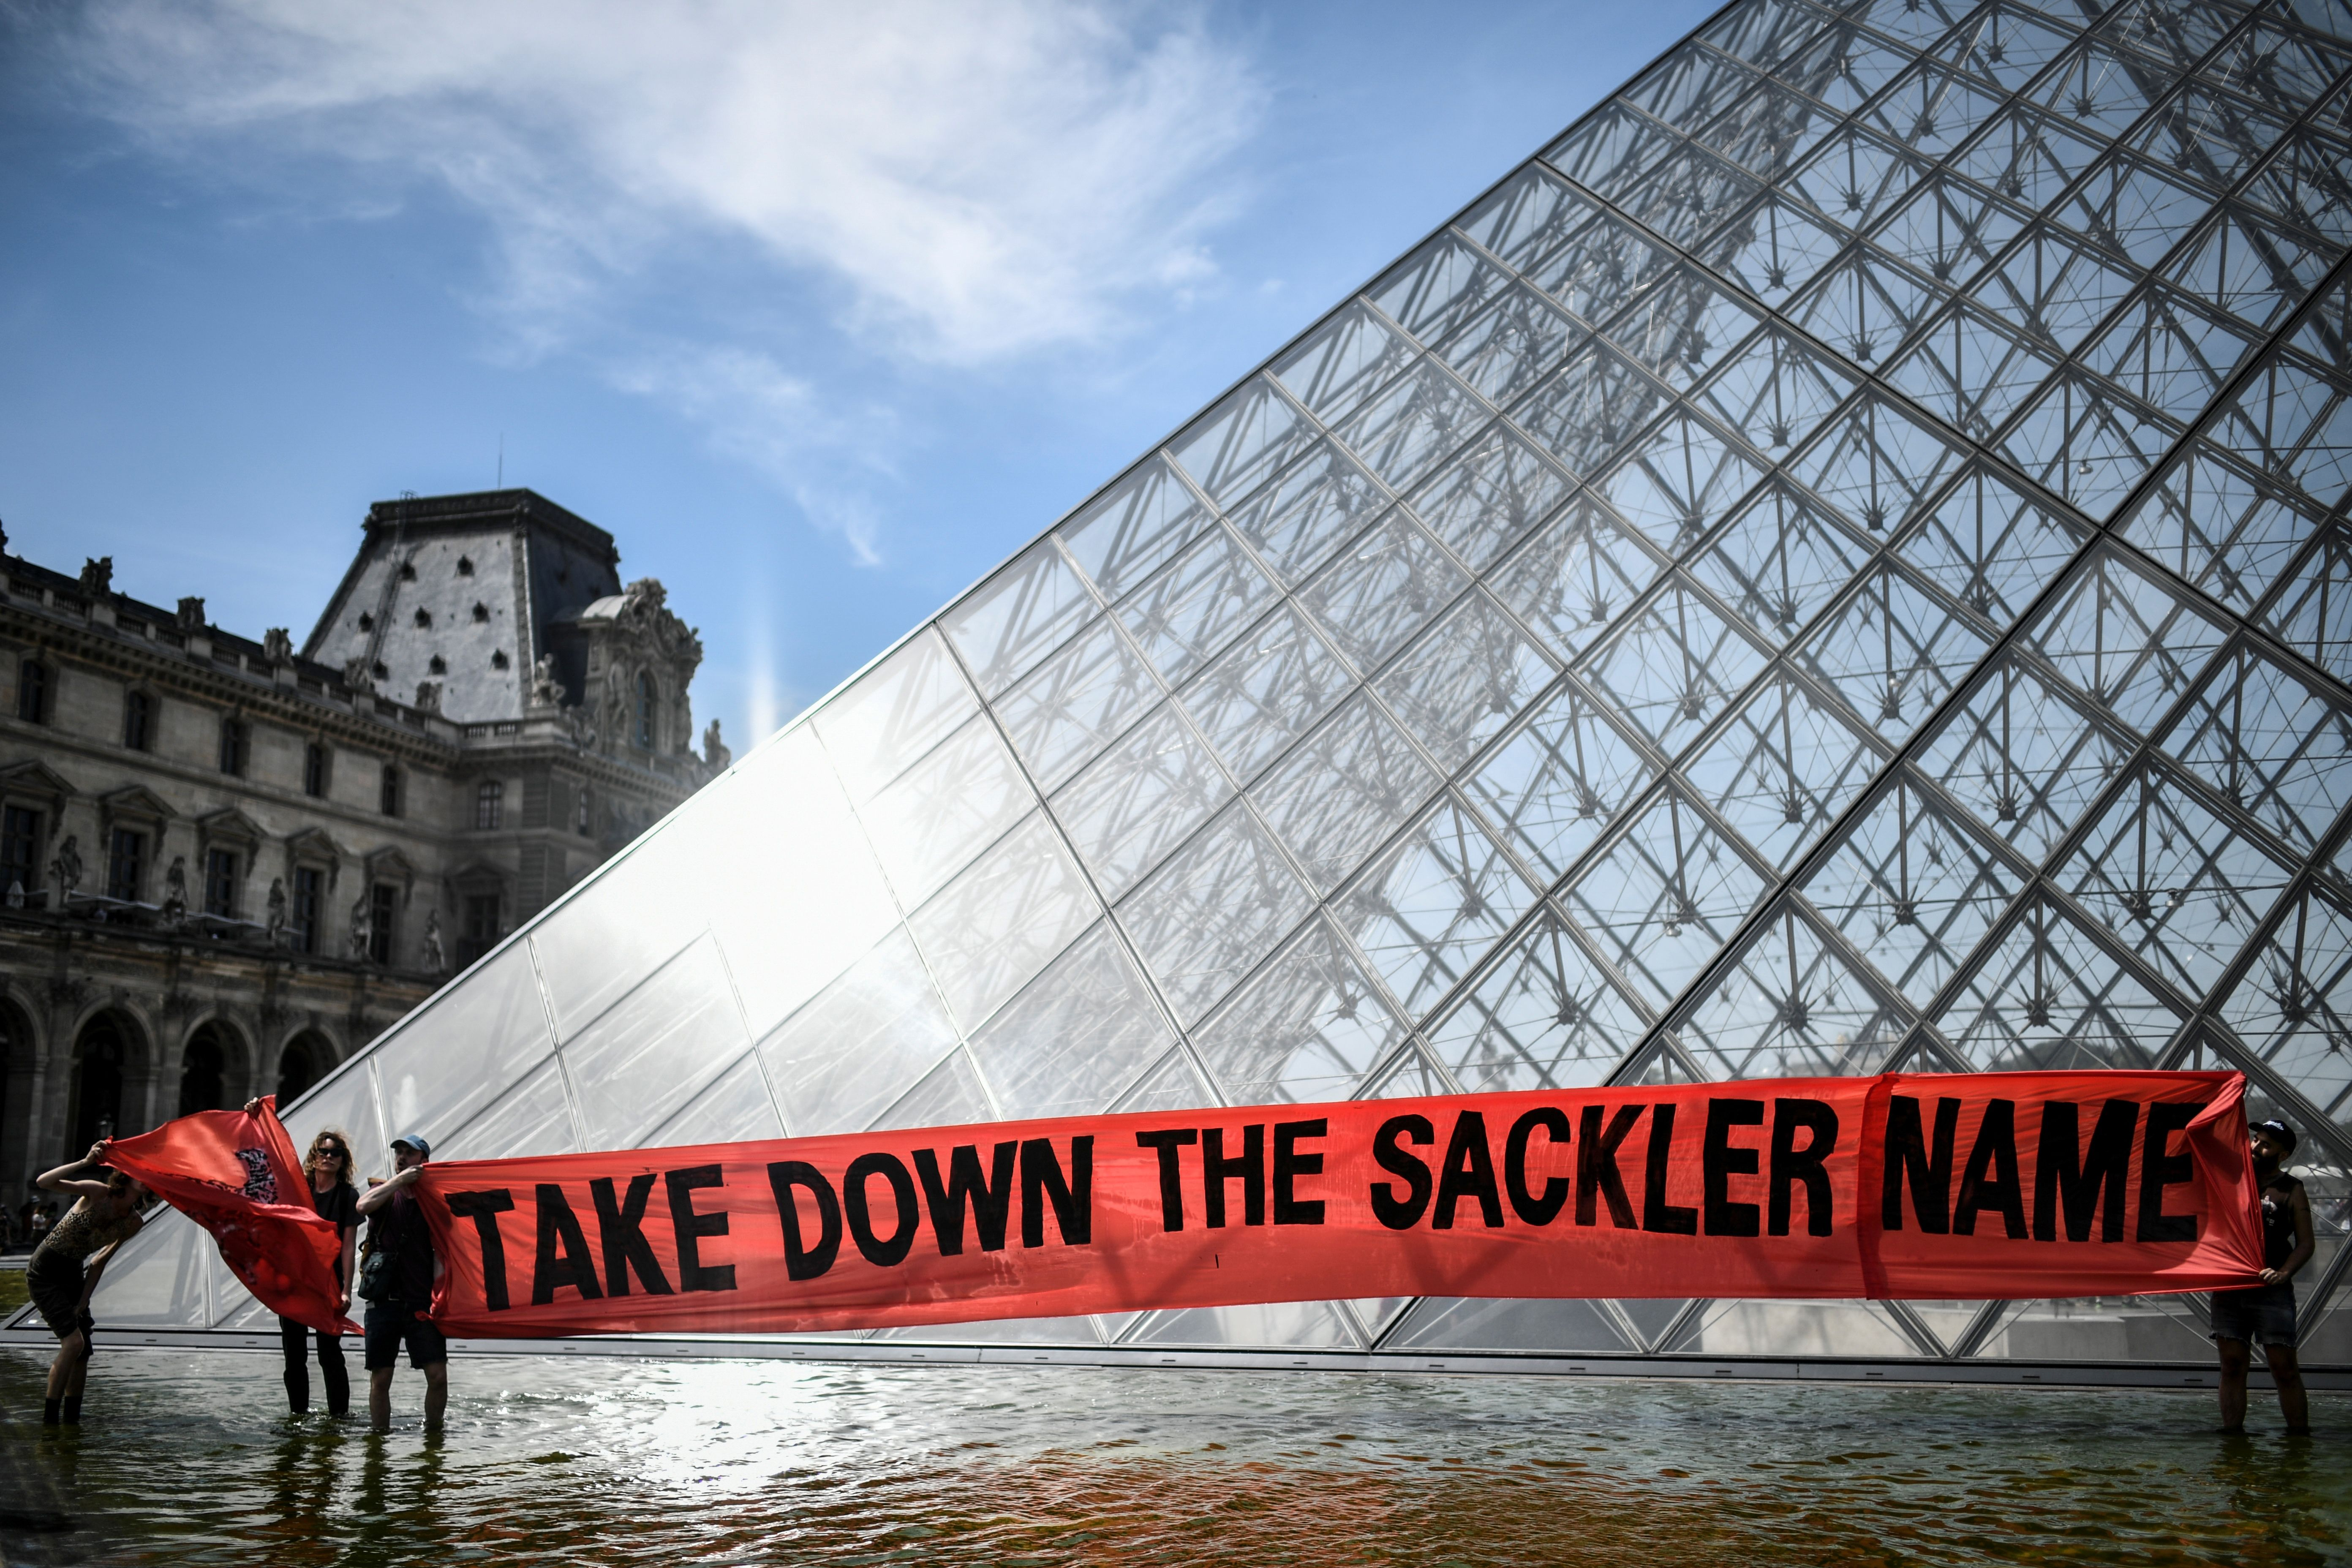 Activists protest the Sackler family in front of the Louvre on July 1, 2019. The museum's Wing of Oriental Antiquities was formerly named for the Sackler family. (Stephane De Sakutin/AFP/Getty Images)